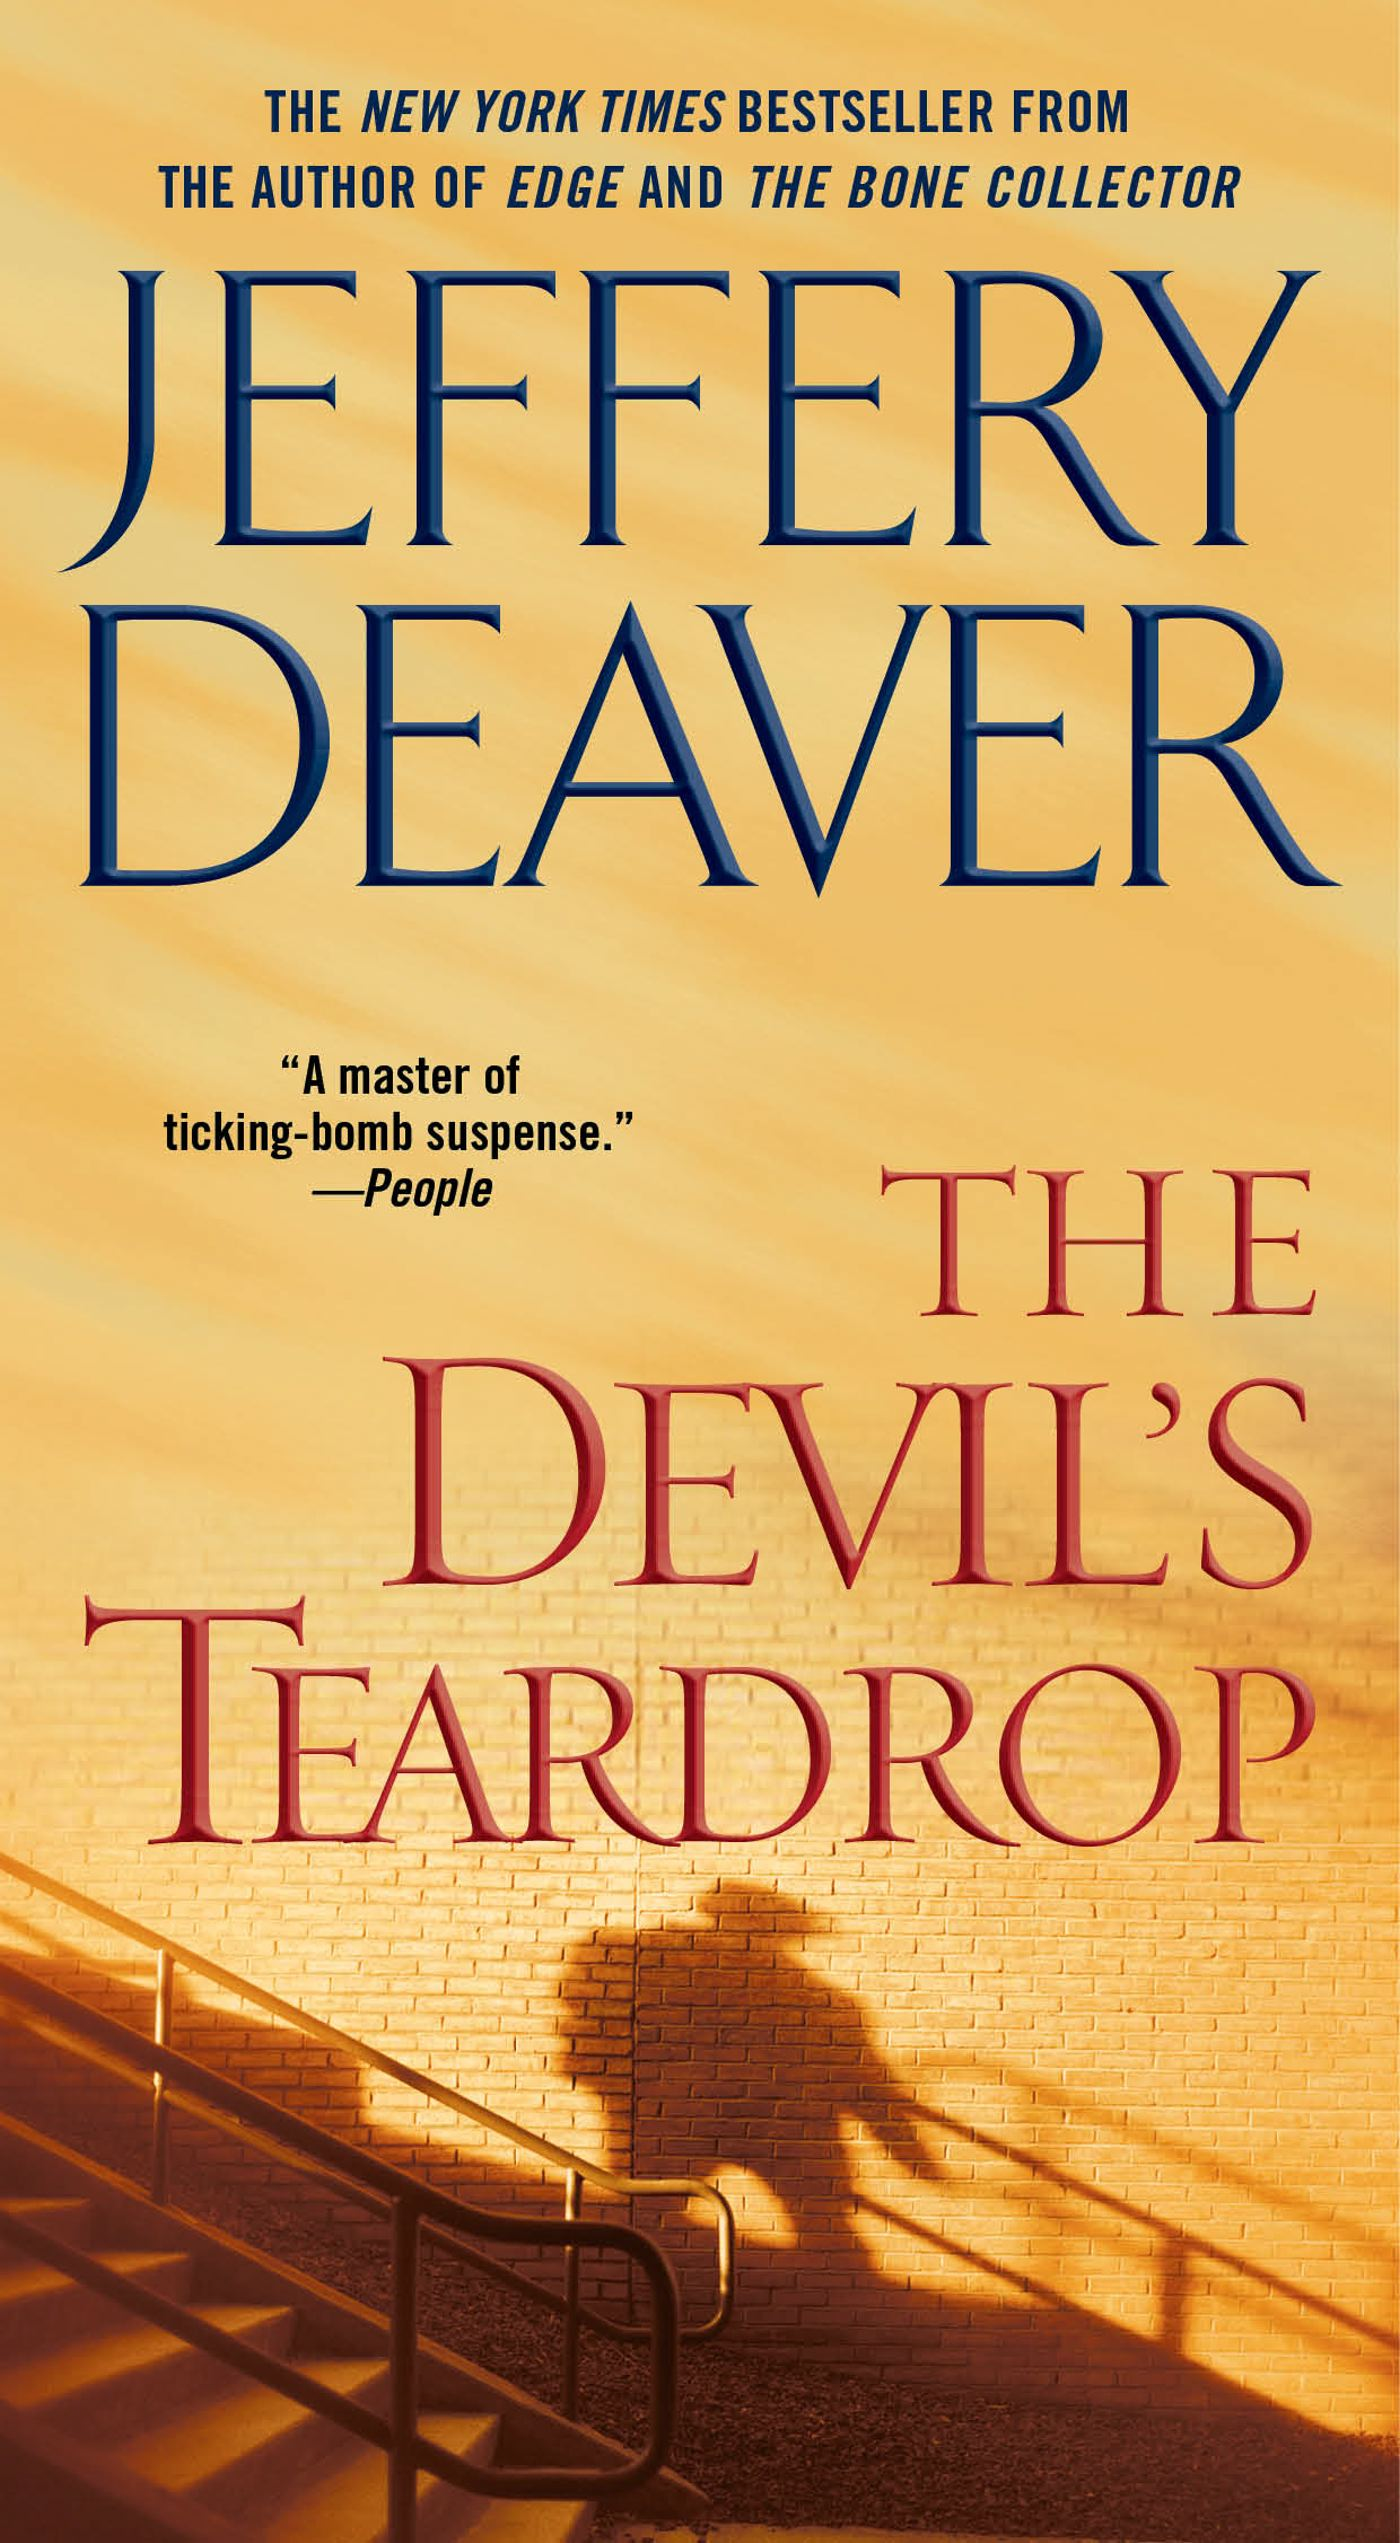 Devils-teardrop-9781439195116_hr